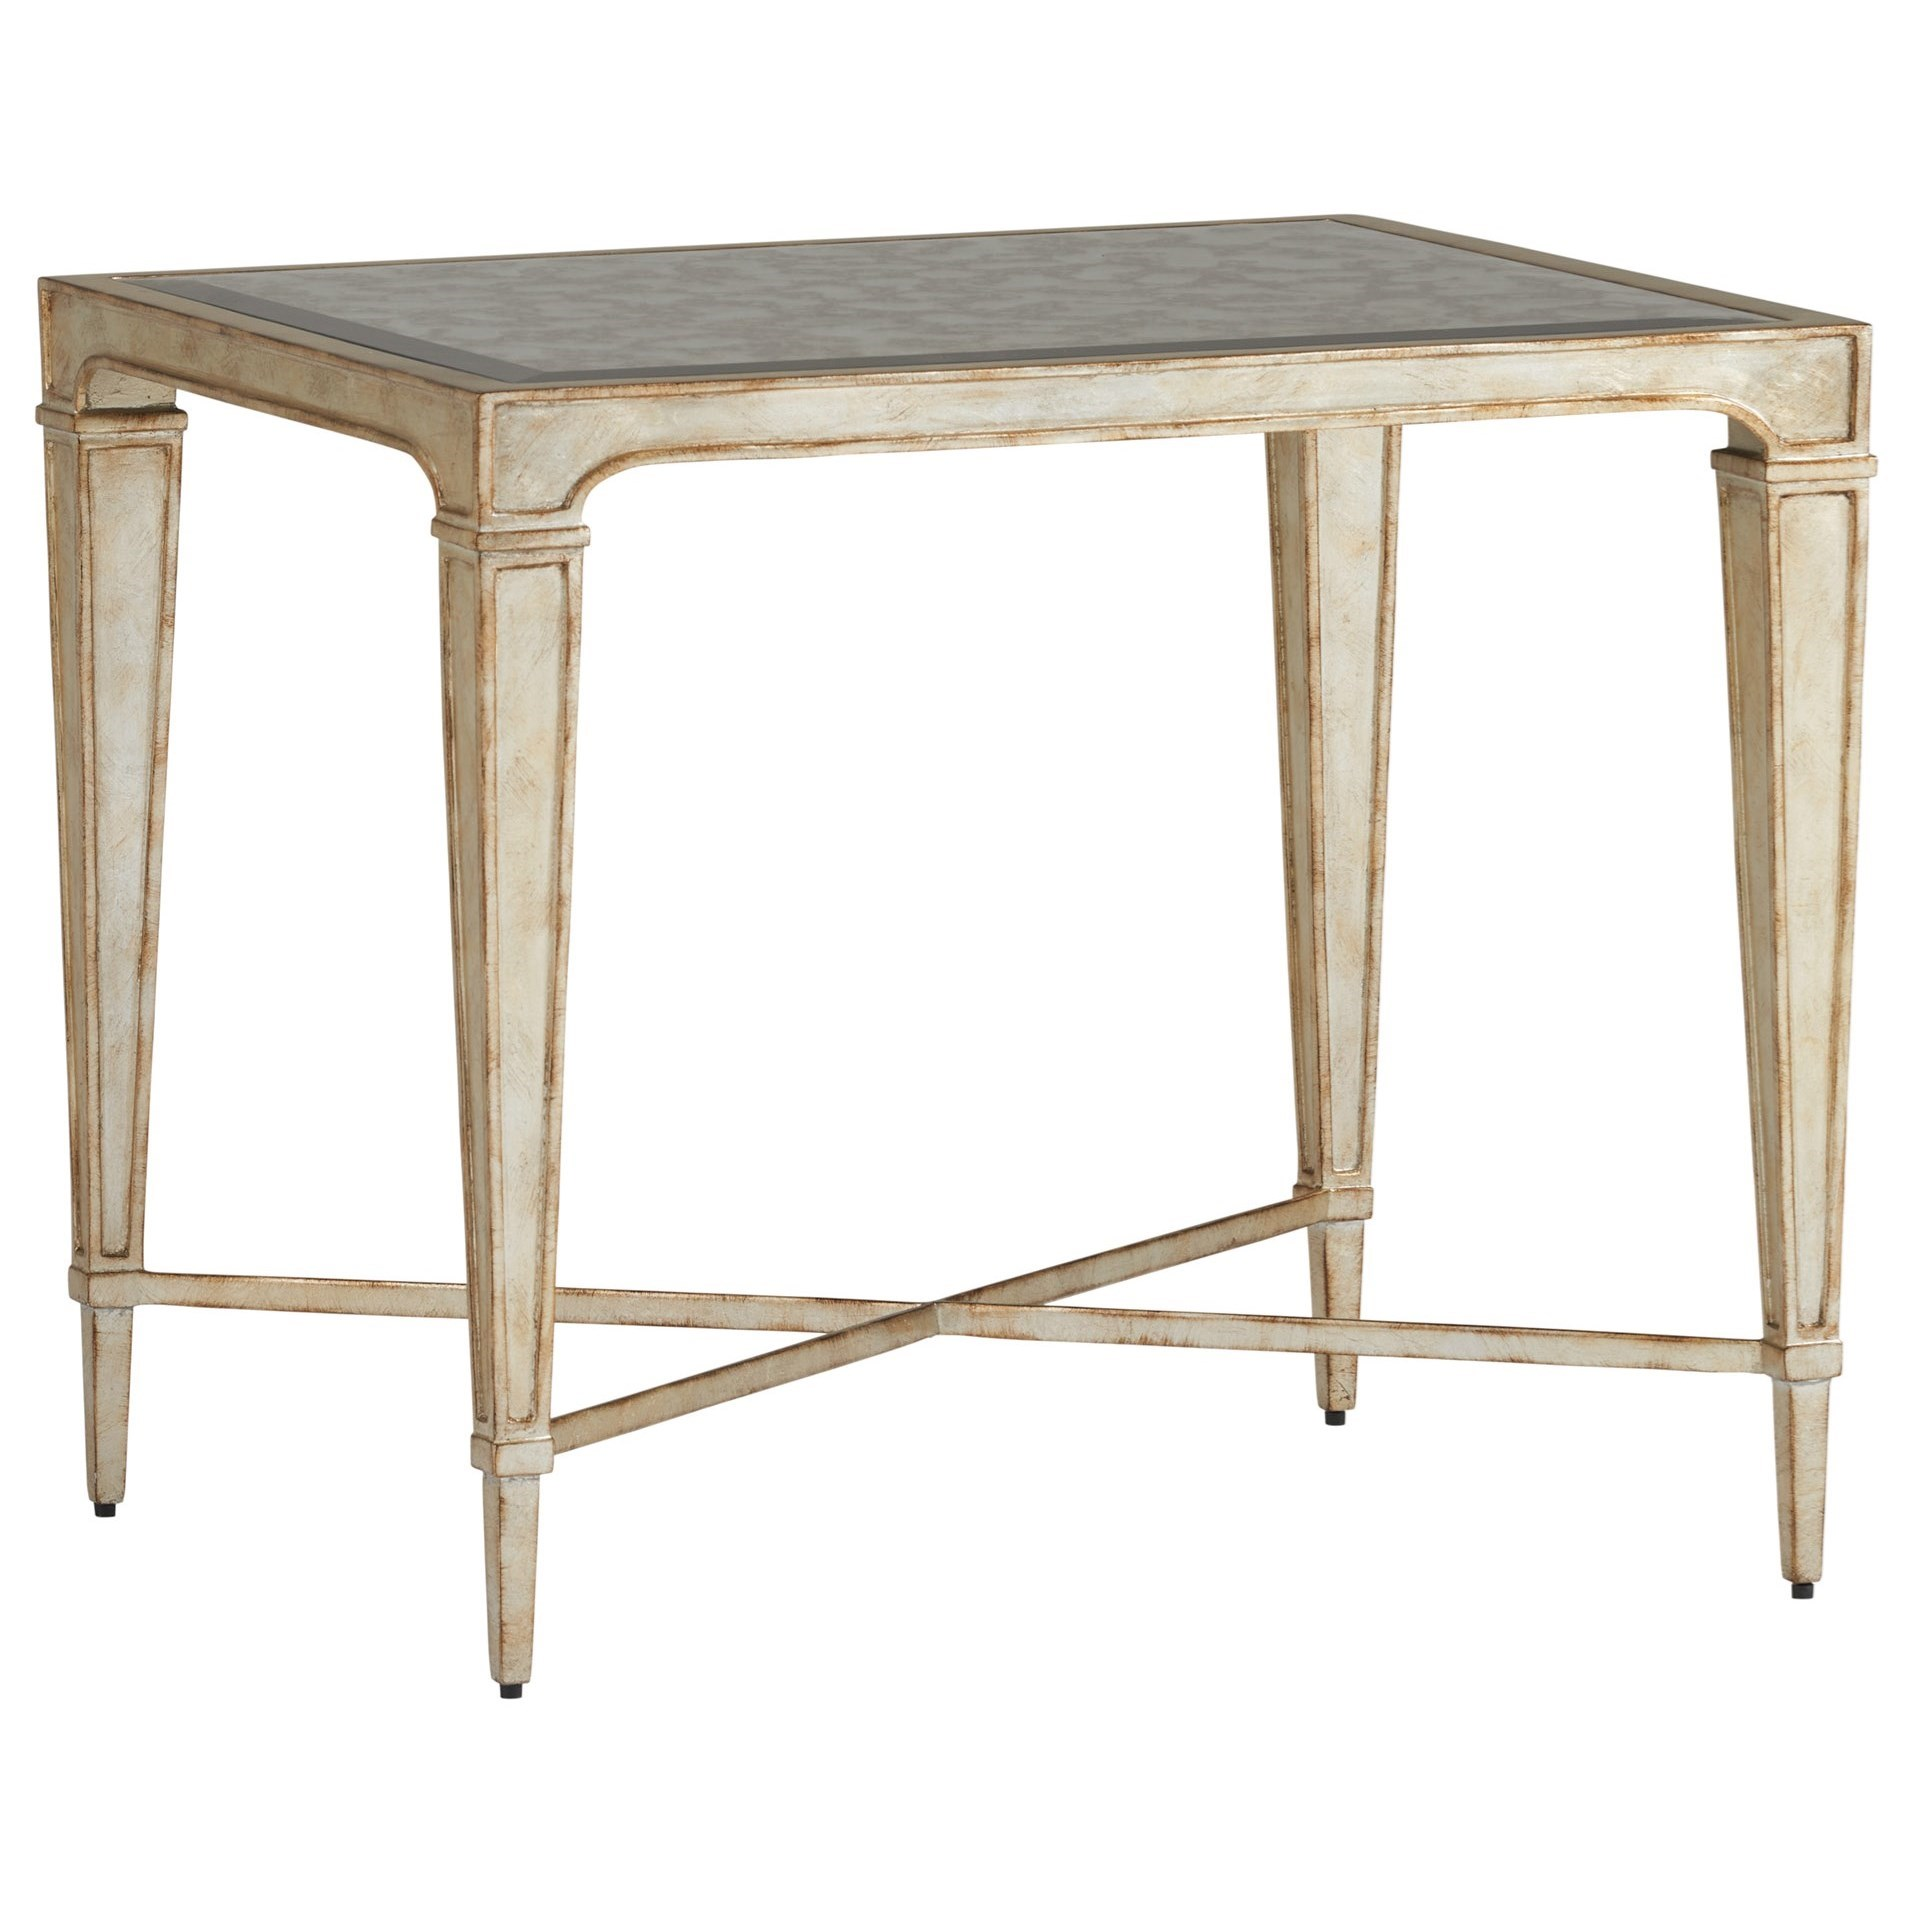 lexington carlyle pierre silver leaf end table with antiqued products color furniture tables ethan allen burlington gately pallet furn contemporary lamps outdoor covers kmart inch